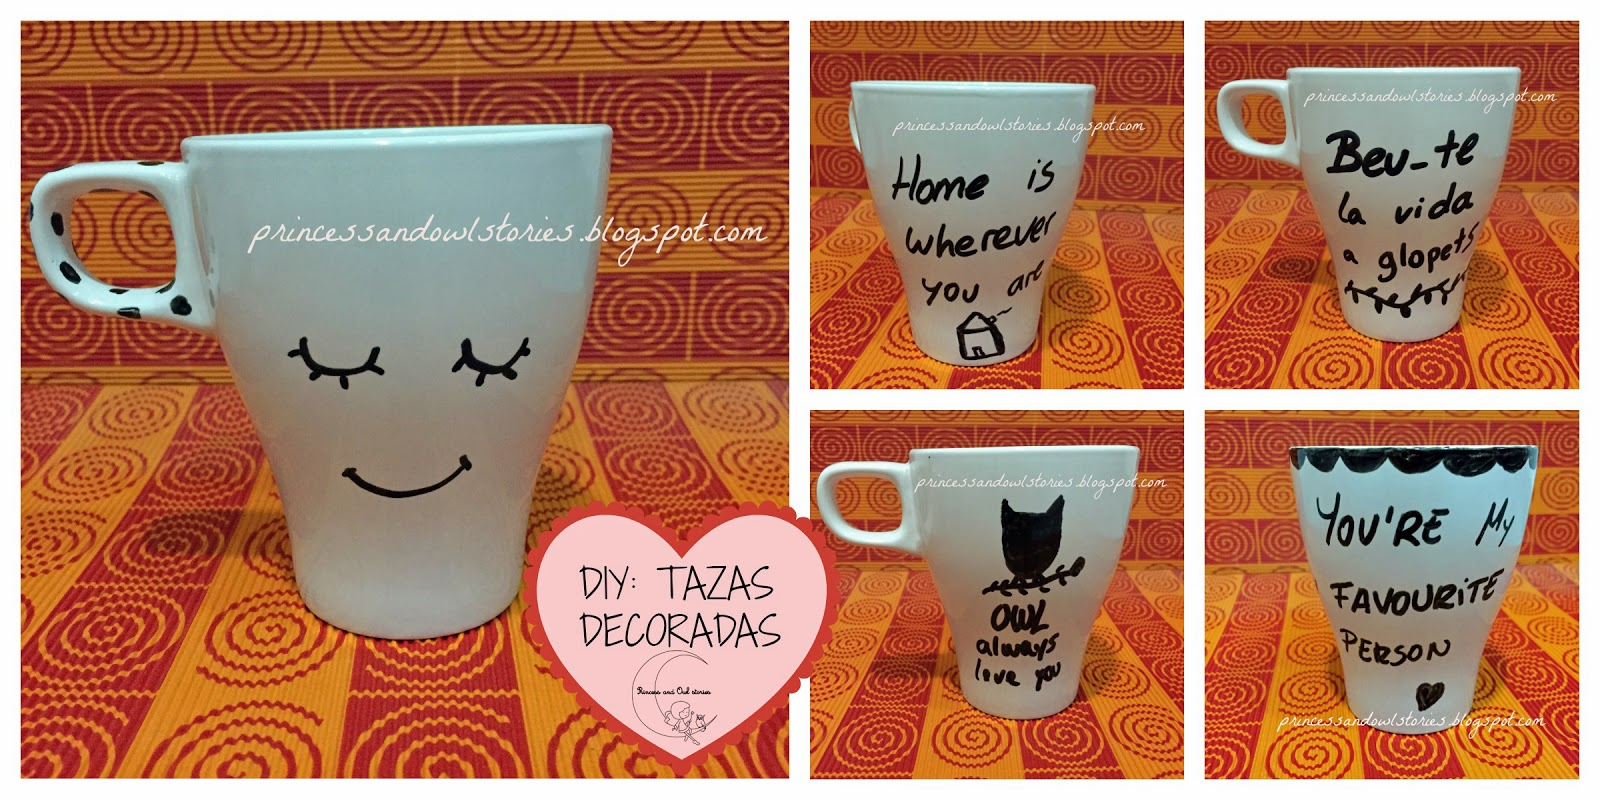 Diy tazas decoradas princess owl stories for Cocinas baratisimas